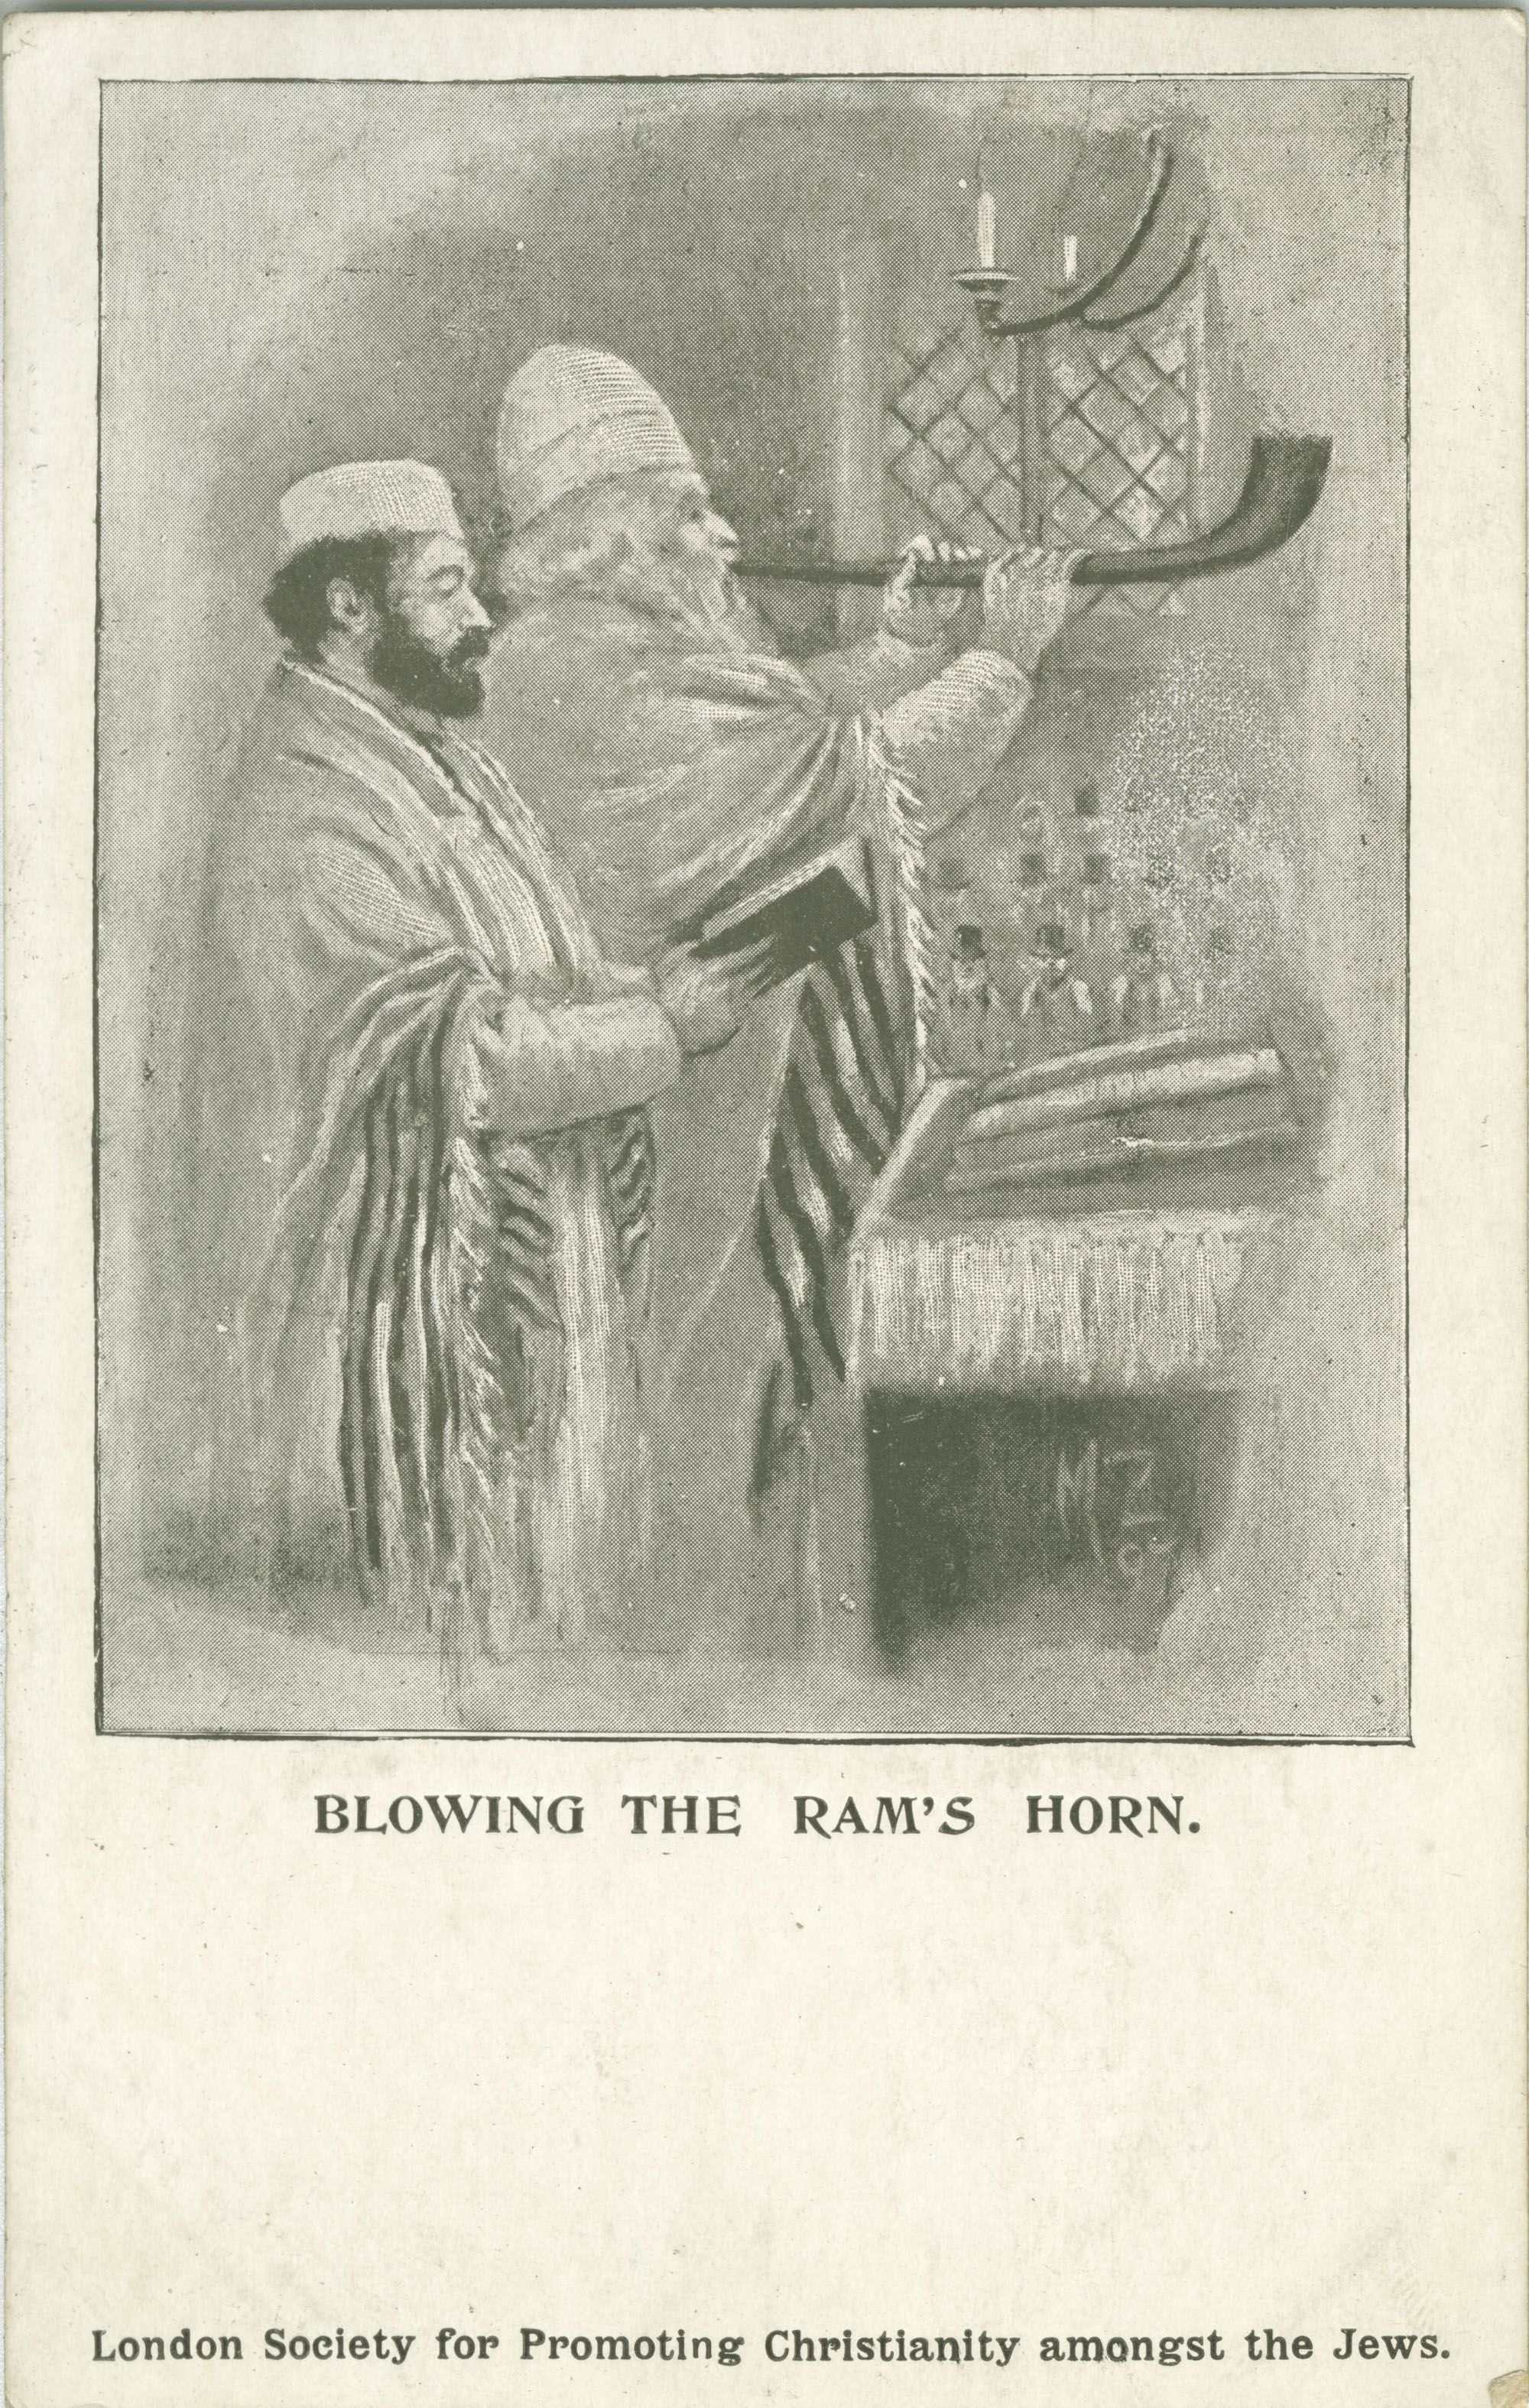 Blowing the Ram's Horn